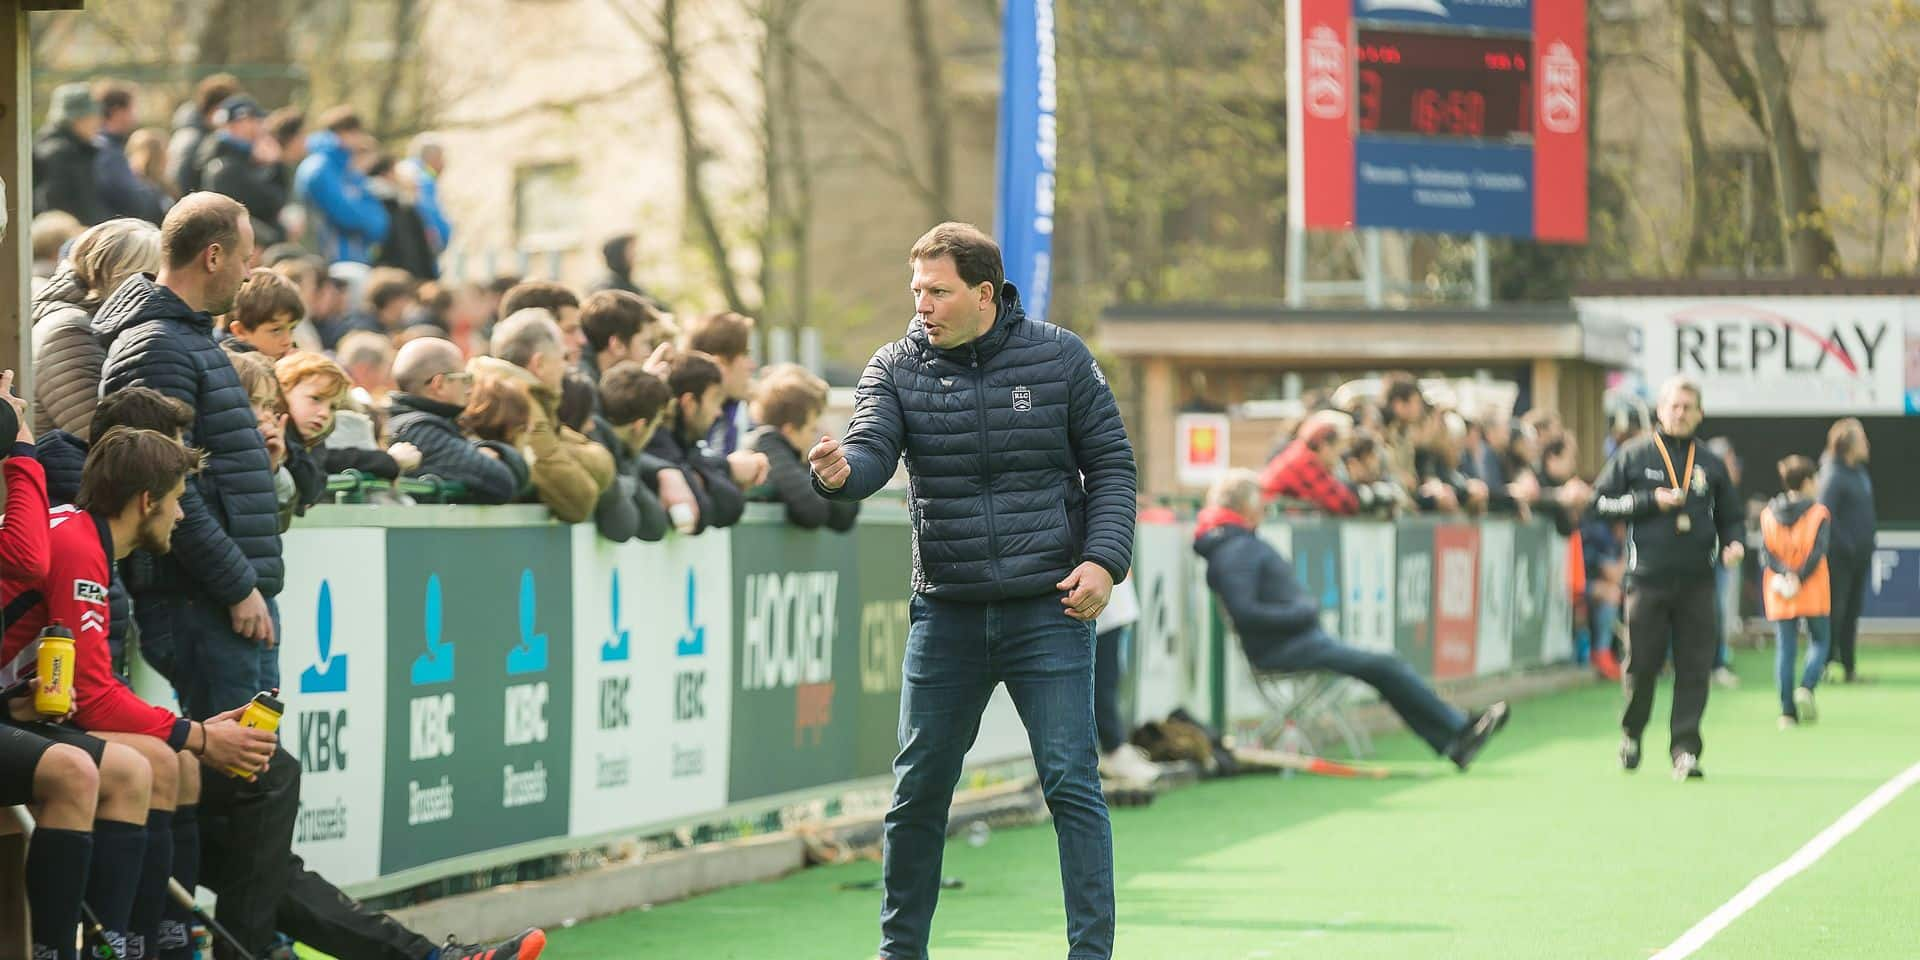 Leopold's head coach Robin Geens pictured during a hockey game between Royal Leopold Club and Oree, a quarterfinal play-offs game of the 'Audi league' Belgian hockey competition, Sunday 14 April 2019 in Uccle - Ukkel, Brussels. BELGA PHOTO JAMES ARTHUR GEKIERE